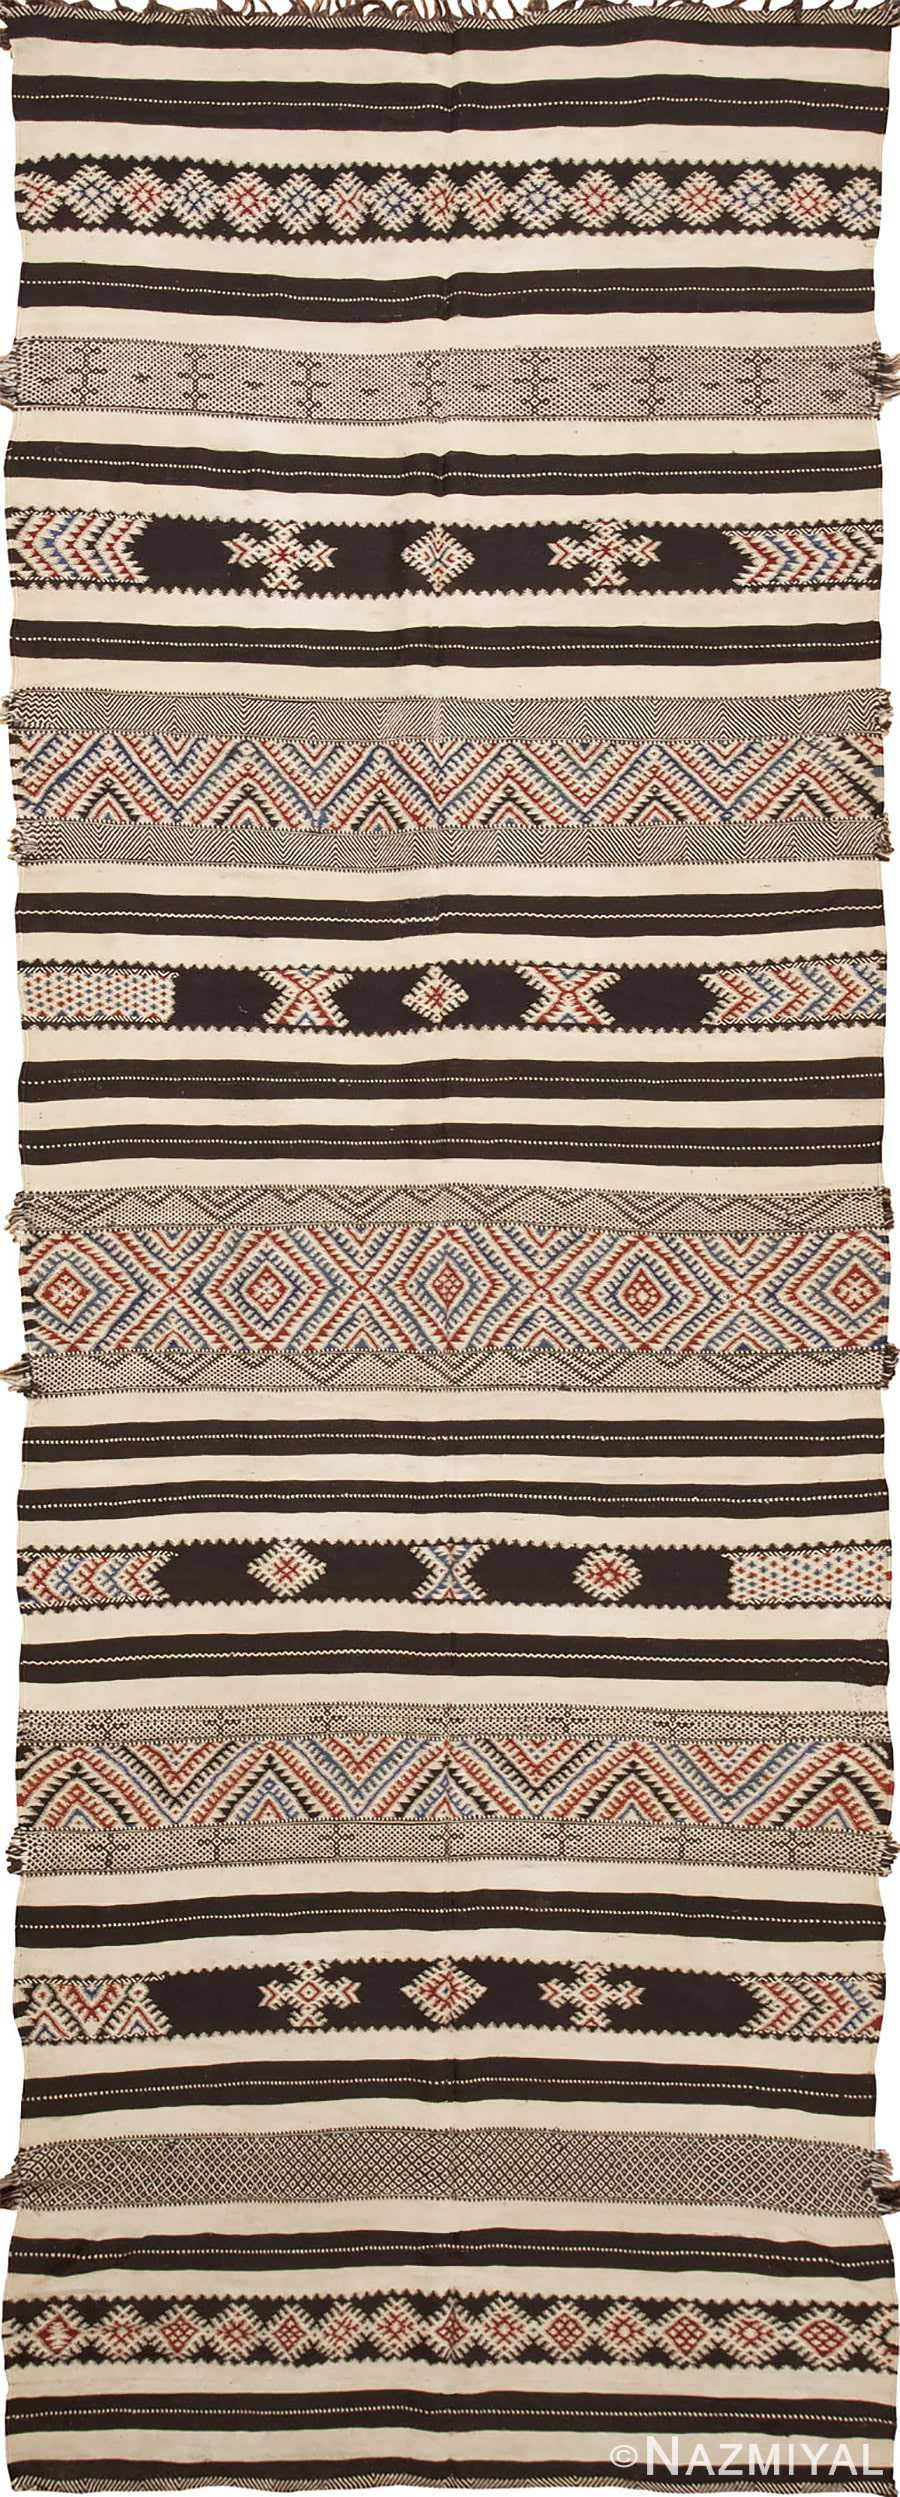 Flat Woven Vintage Moroccan KIlim Rug #45379 from Nazmiyal Antique Rugs NYC